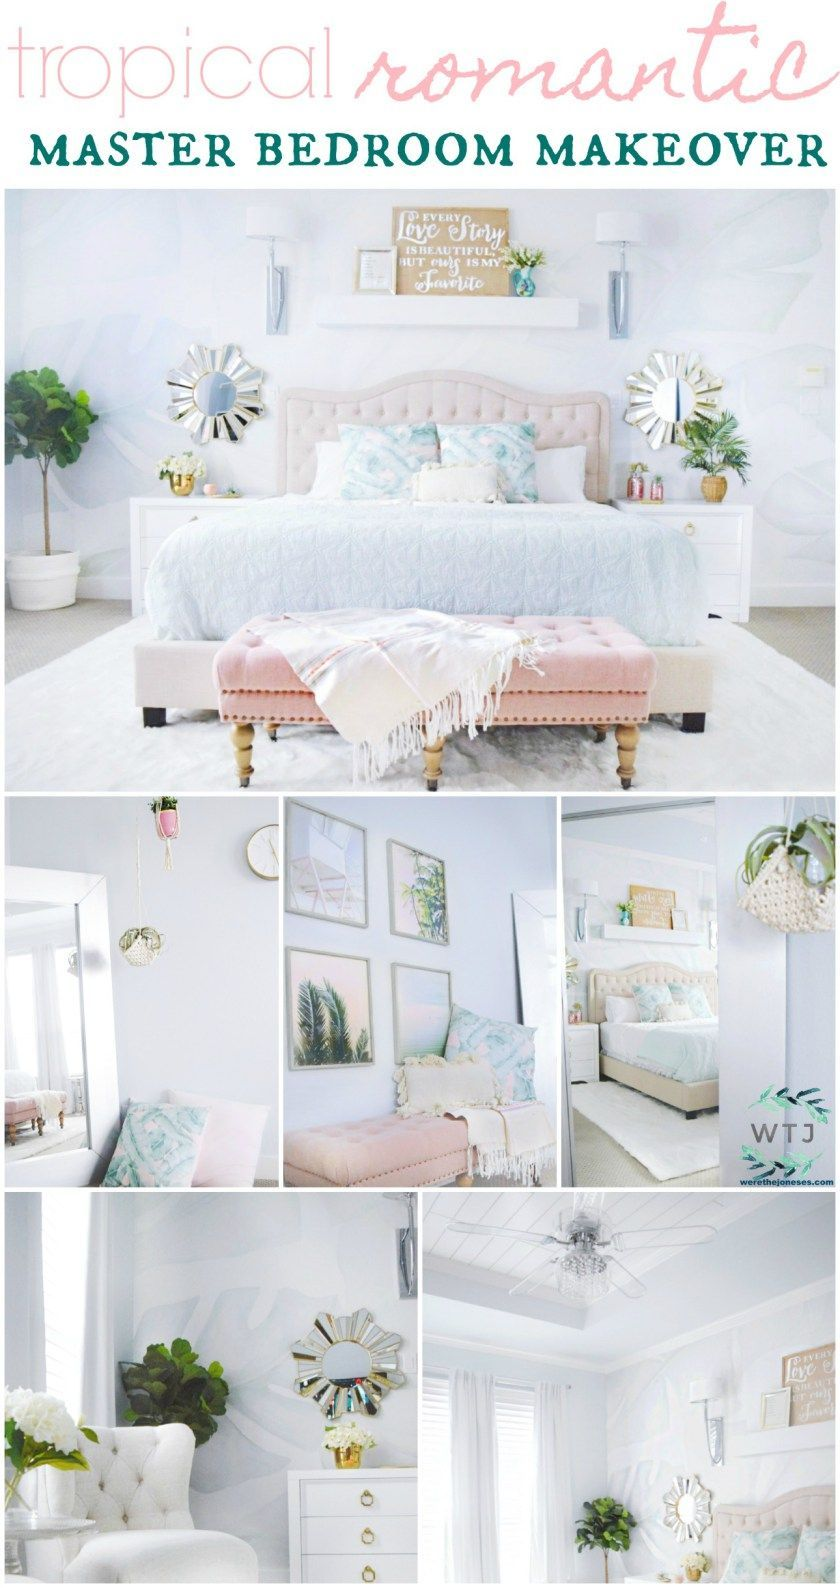 A Beautiful Tropical Romantic Master Bedroom Makeover Master